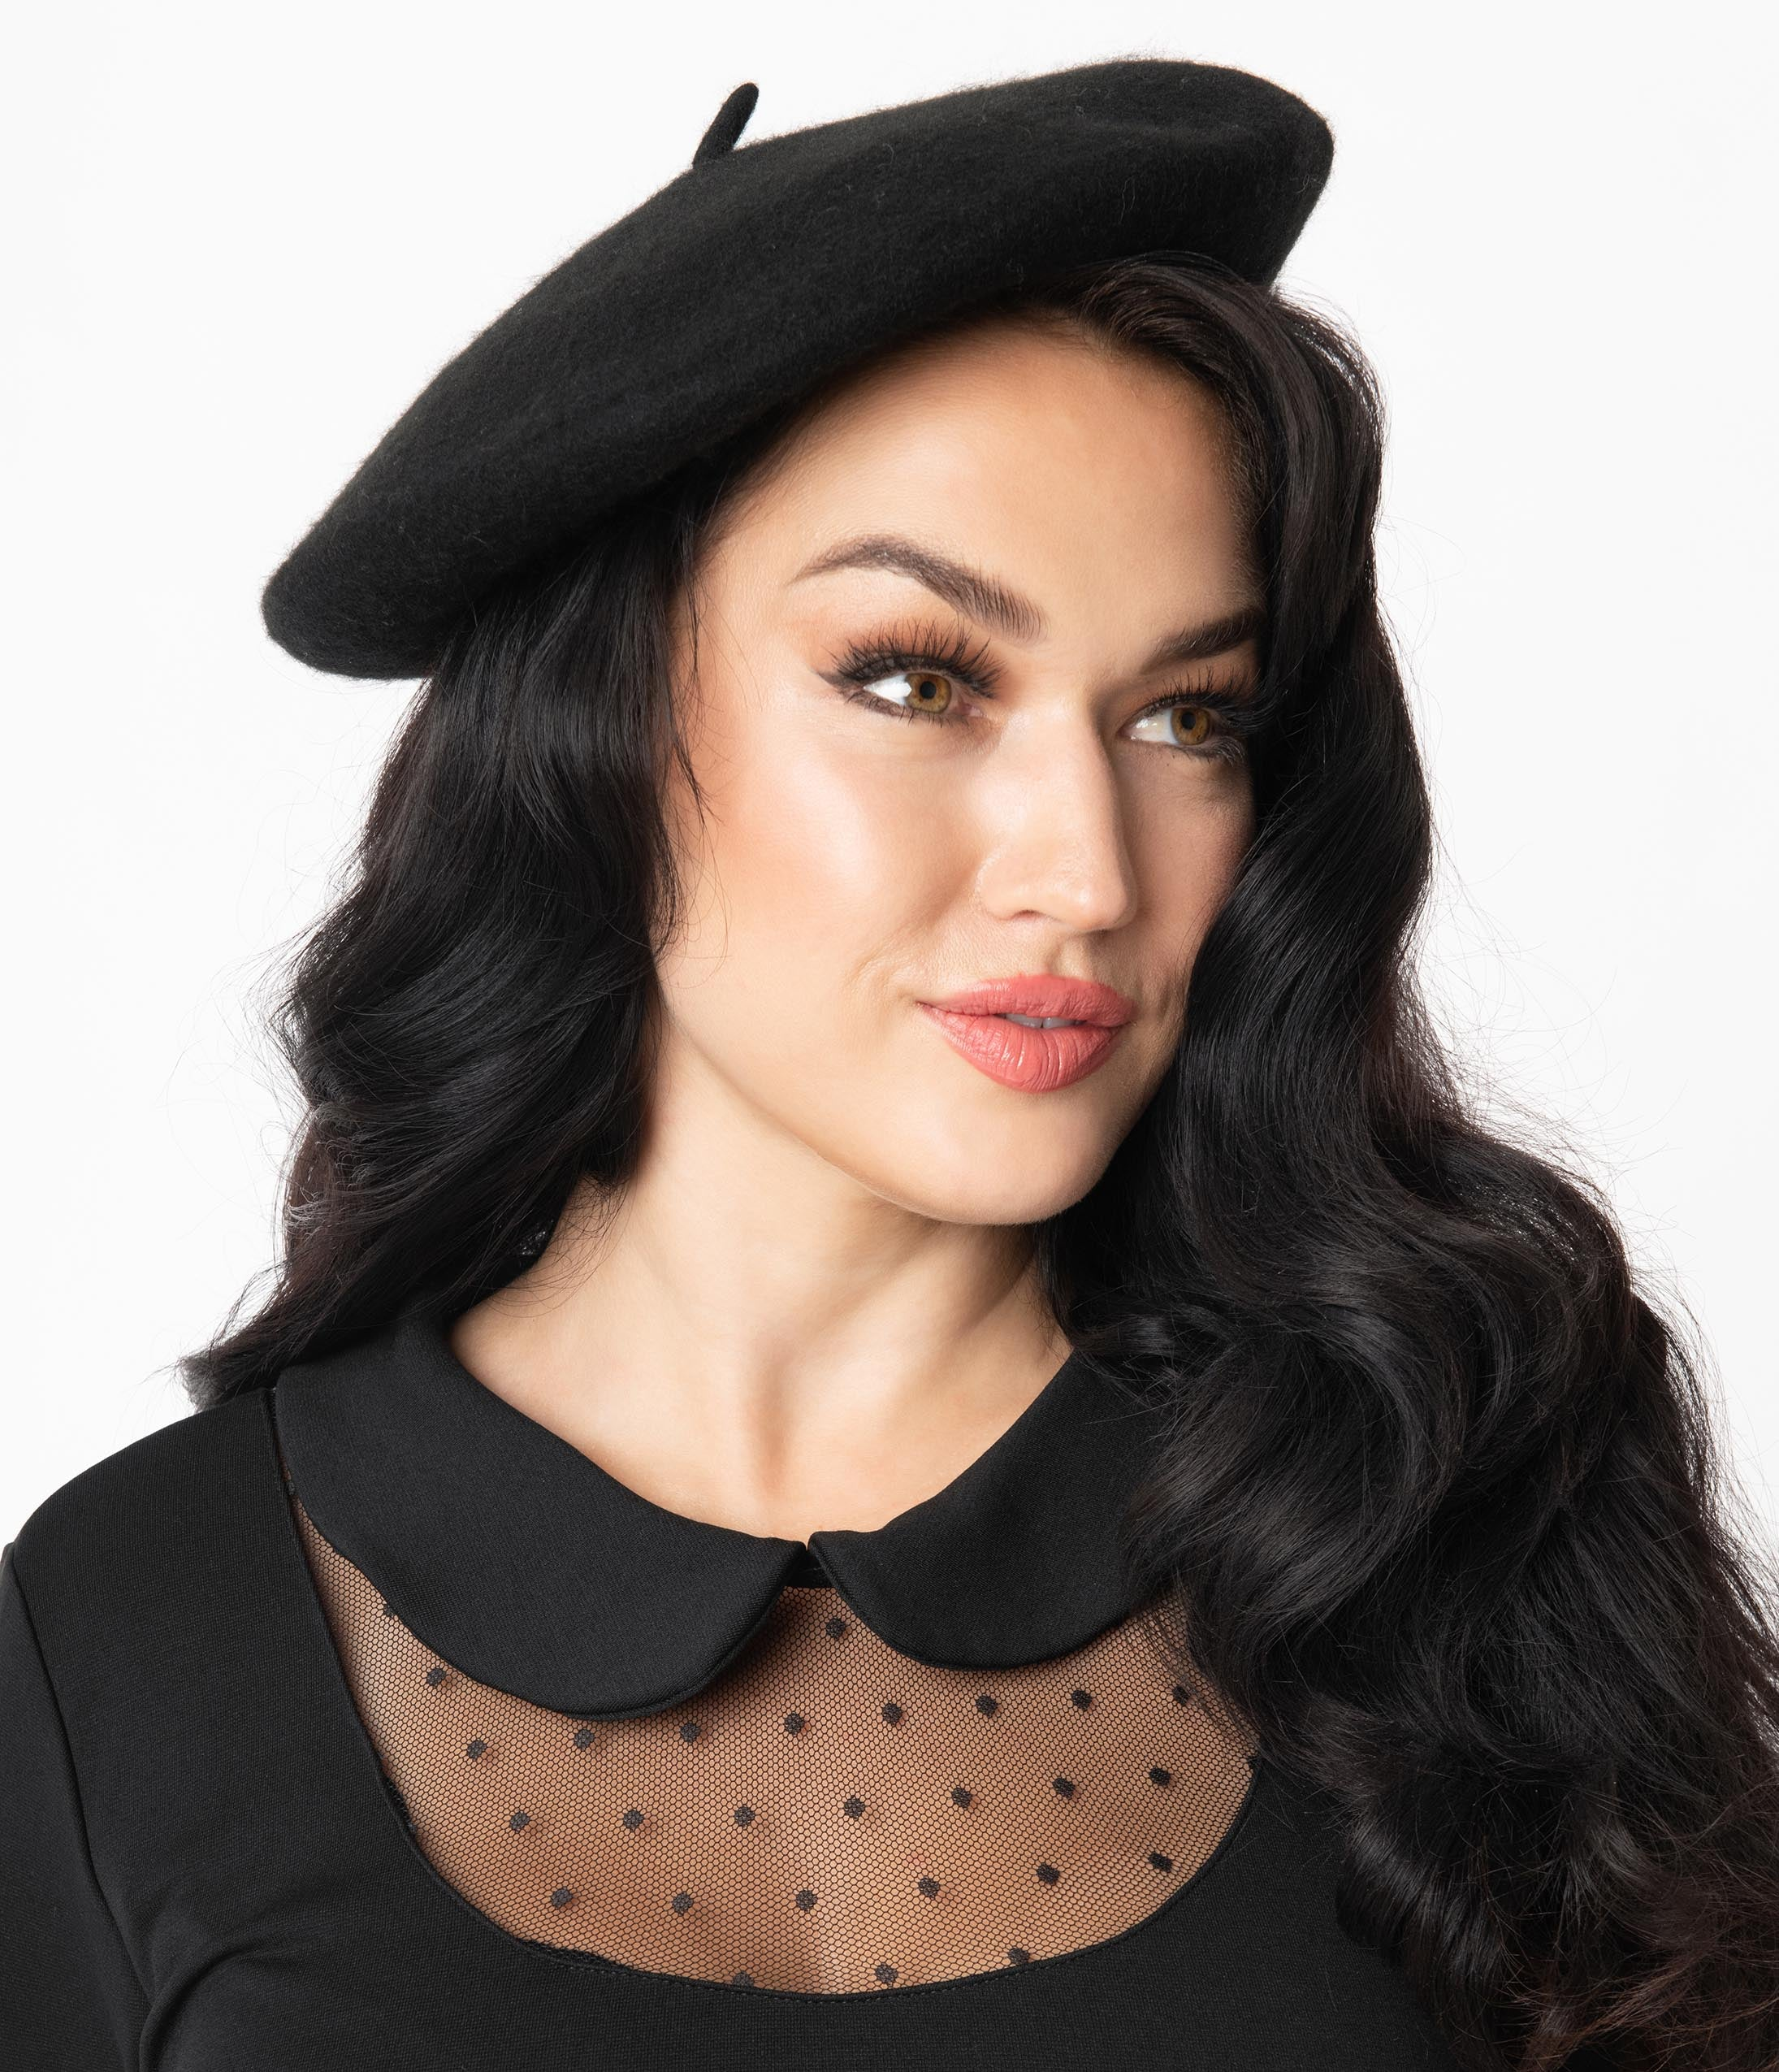 Tea Party Hats – Victorian to 1950s Unique Vintage Black Mon Amour Beret $18.00 AT vintagedancer.com